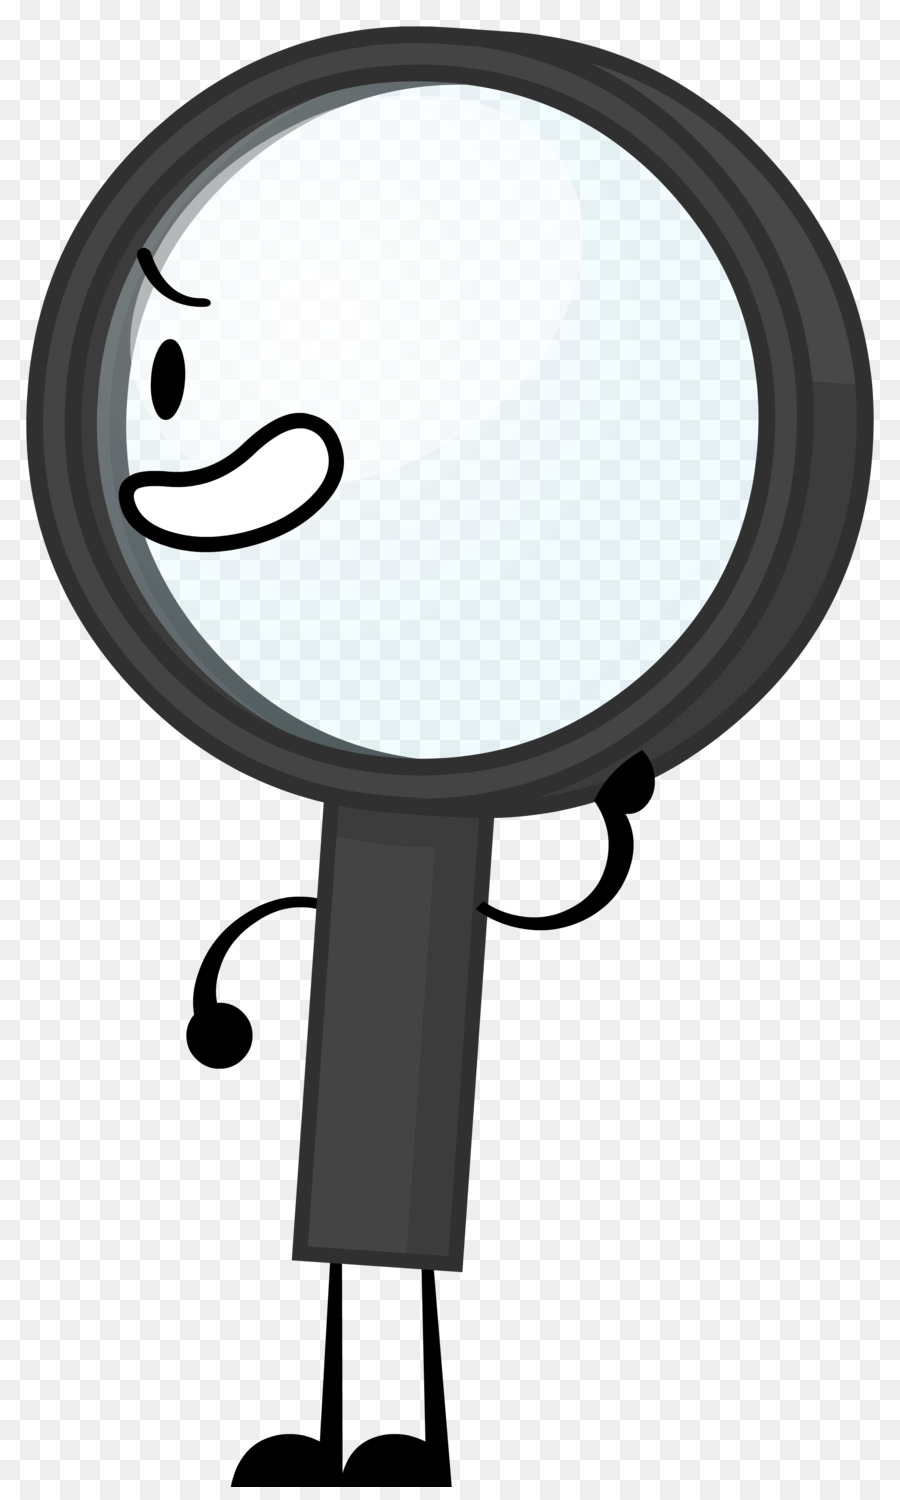 Magnifying Glass Clipart png download - 2334*3856 - Free